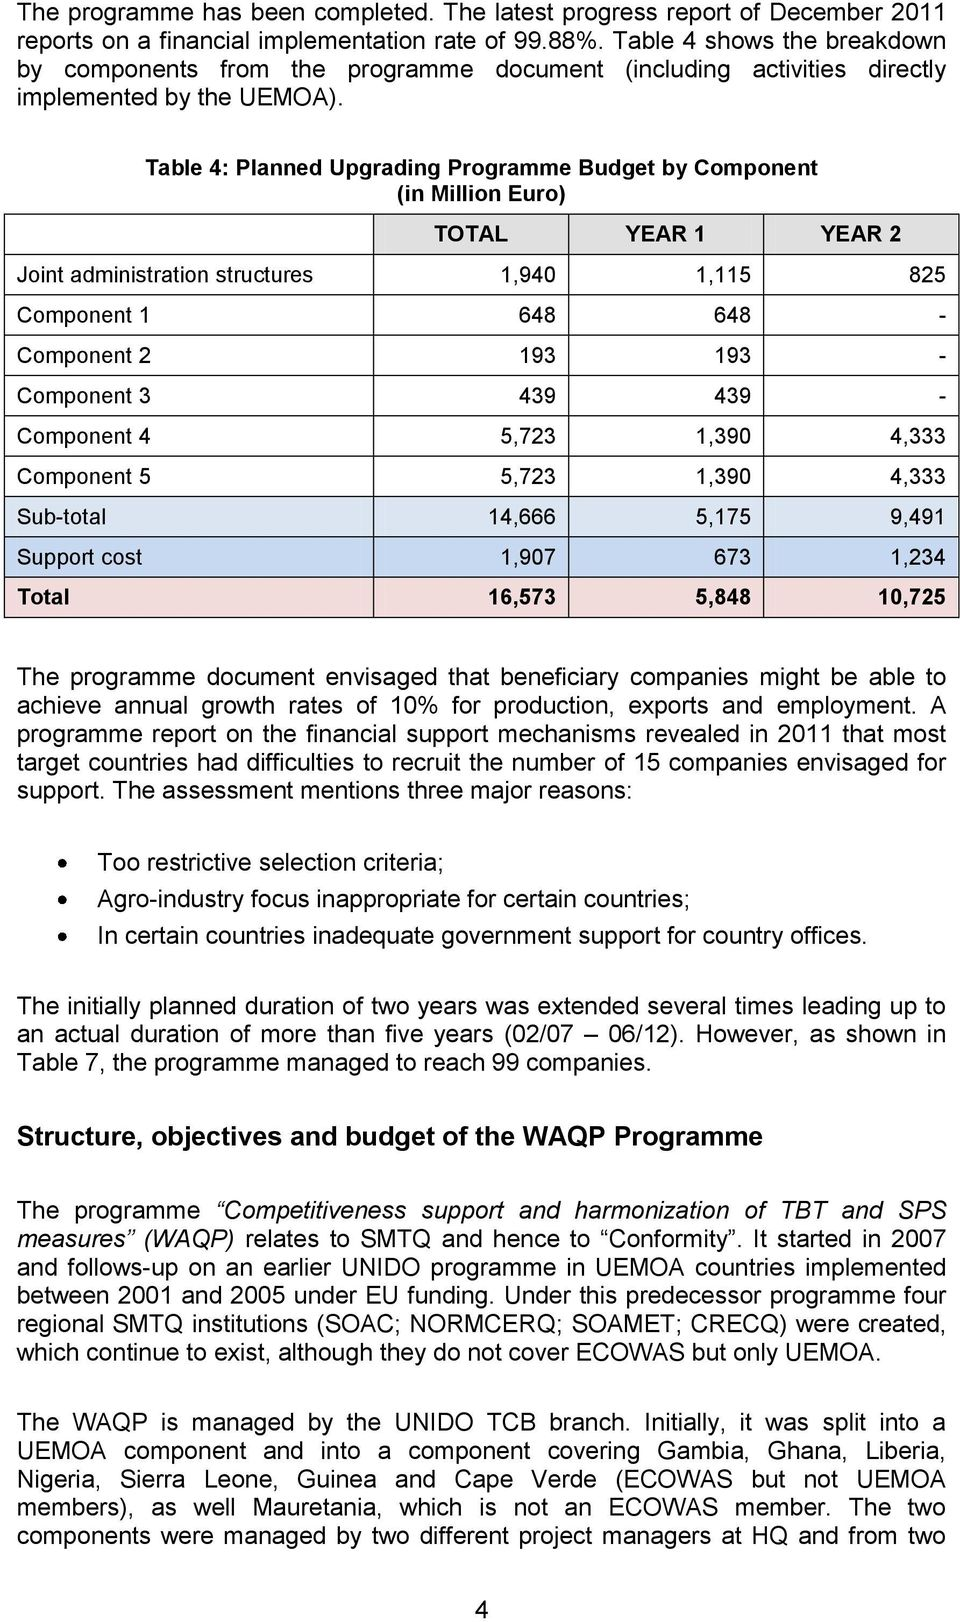 Table 4: Planned Upgrading Programme Budget by Component (in Million Euro) TOTAL YEAR 1 YEAR 2 Joint administration structures 1,940 1,115 825 Component 1 648 648 - Component 2 193 193 - Component 3